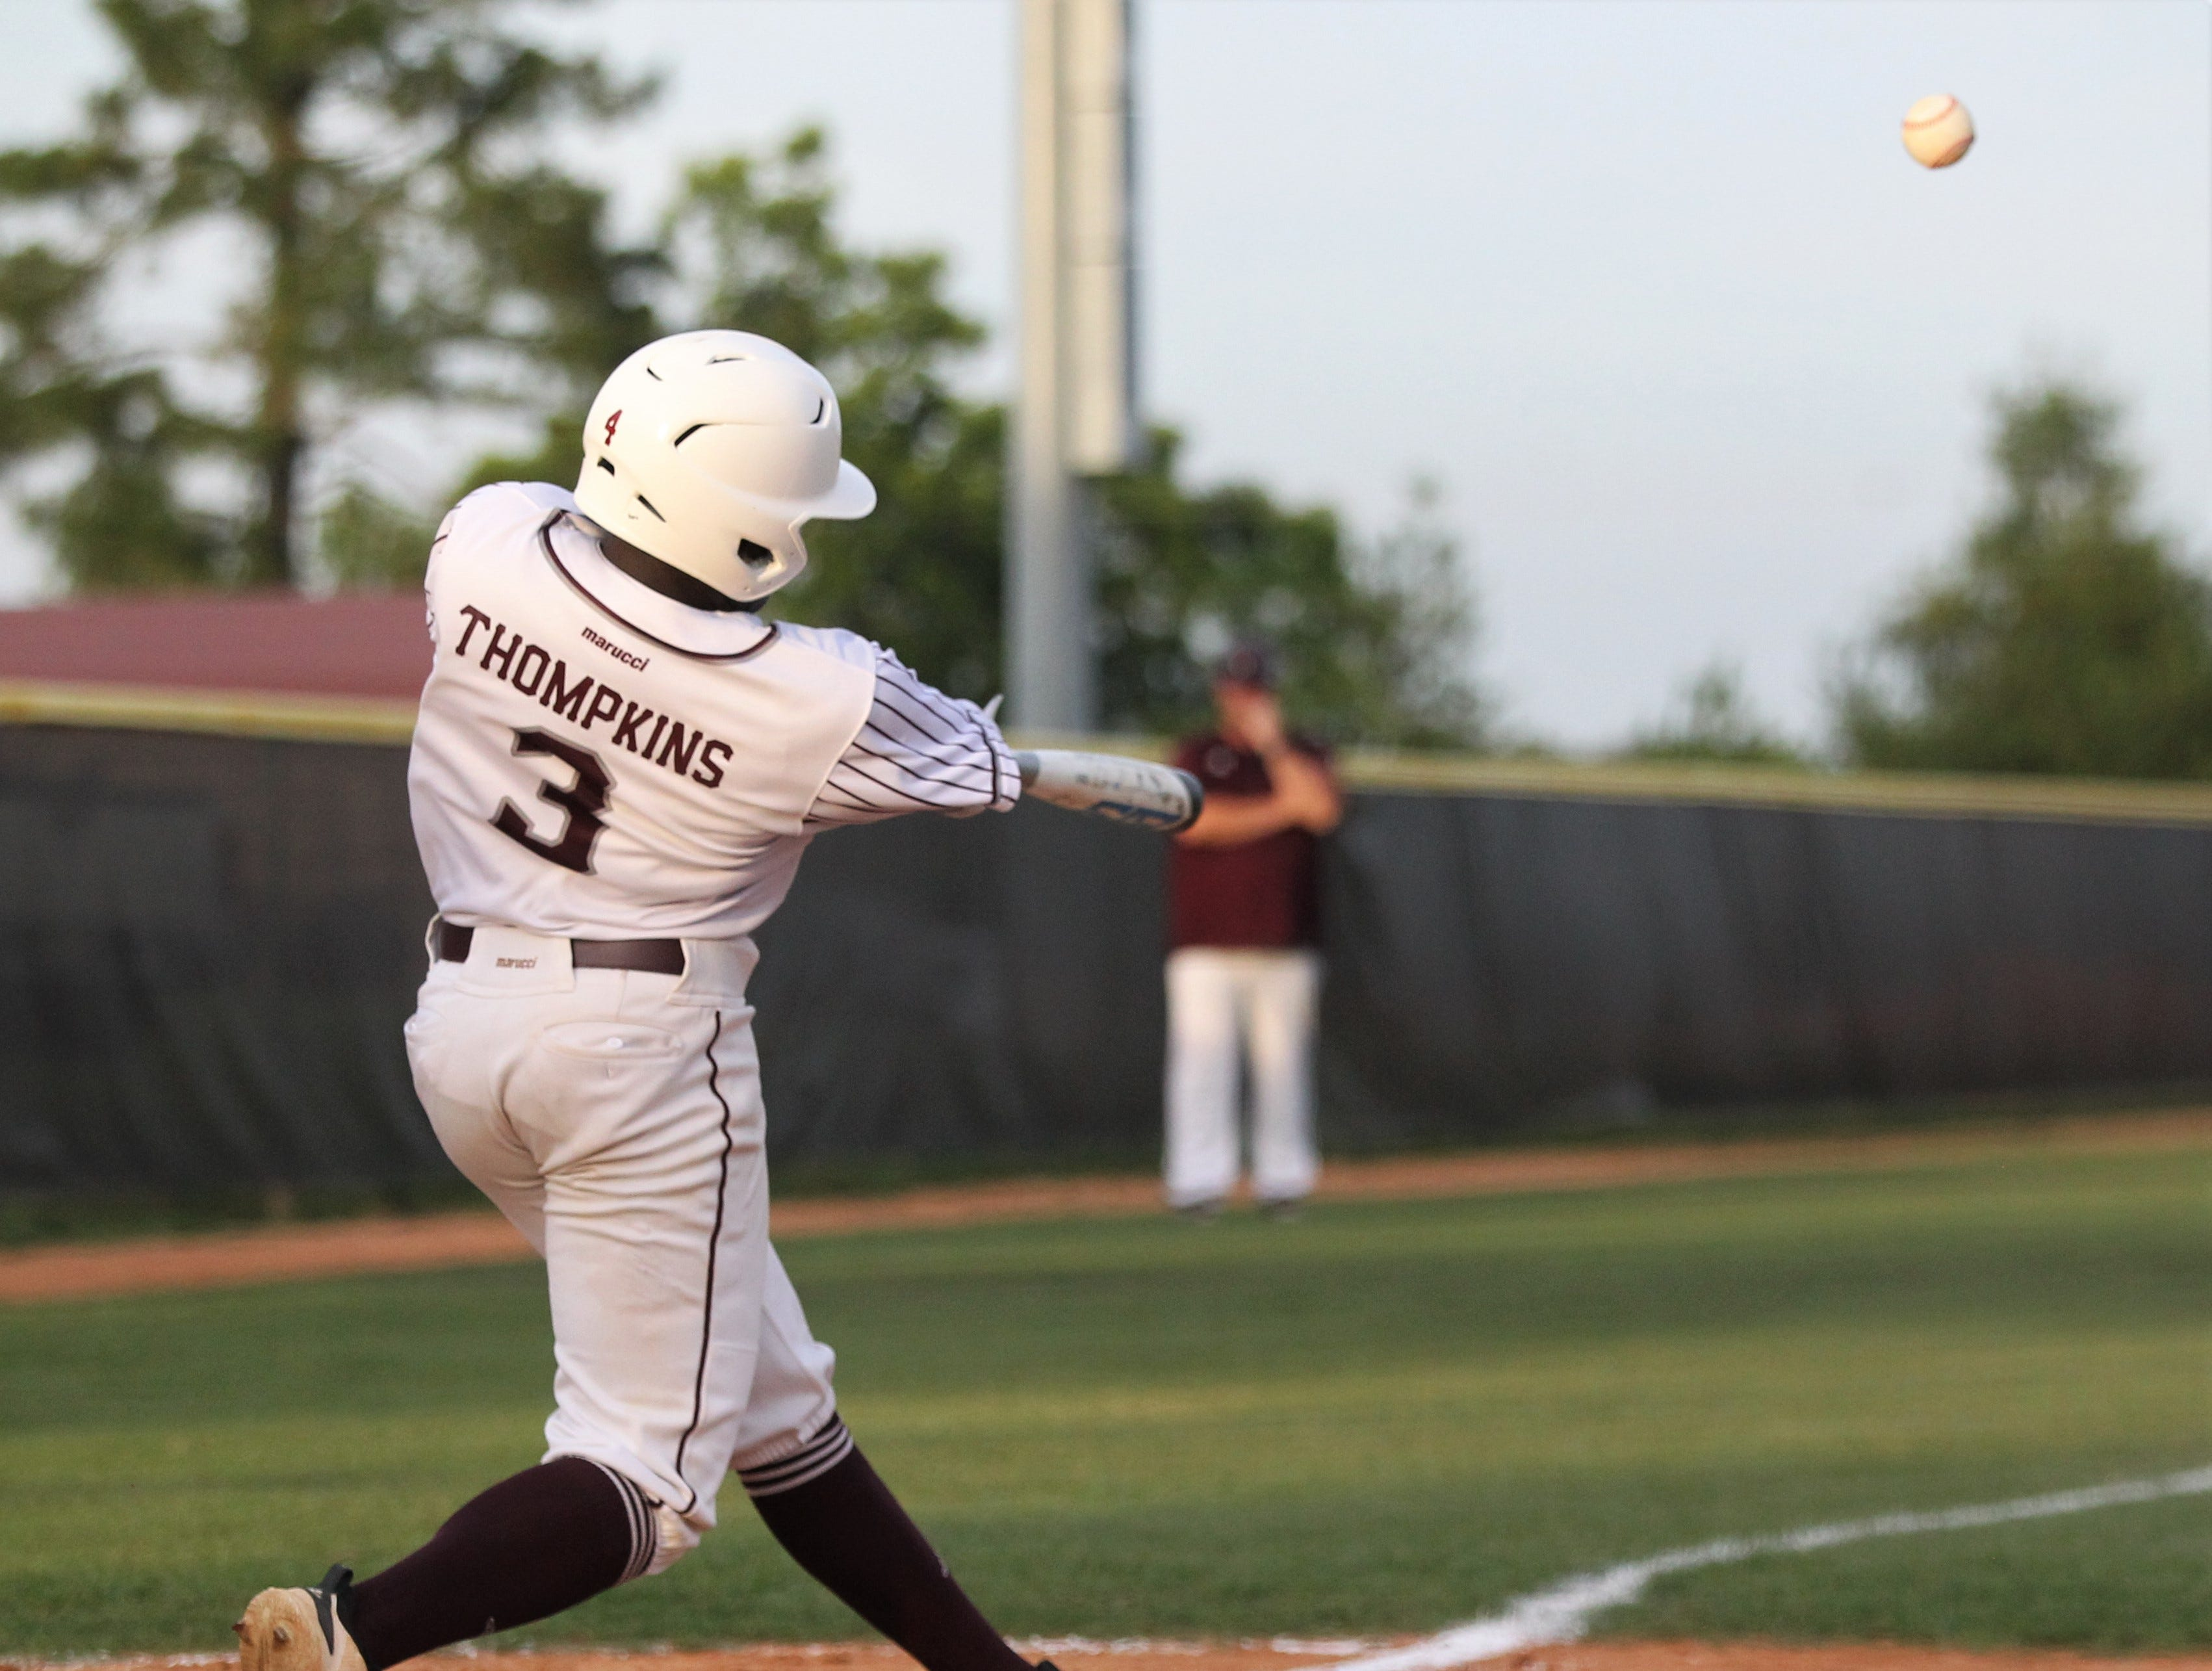 Madison County senior Daquarius Thompkins bats as the Cowboys beat Union County 1-0 during a Region 2-1A semifinal on May 14, 2019.